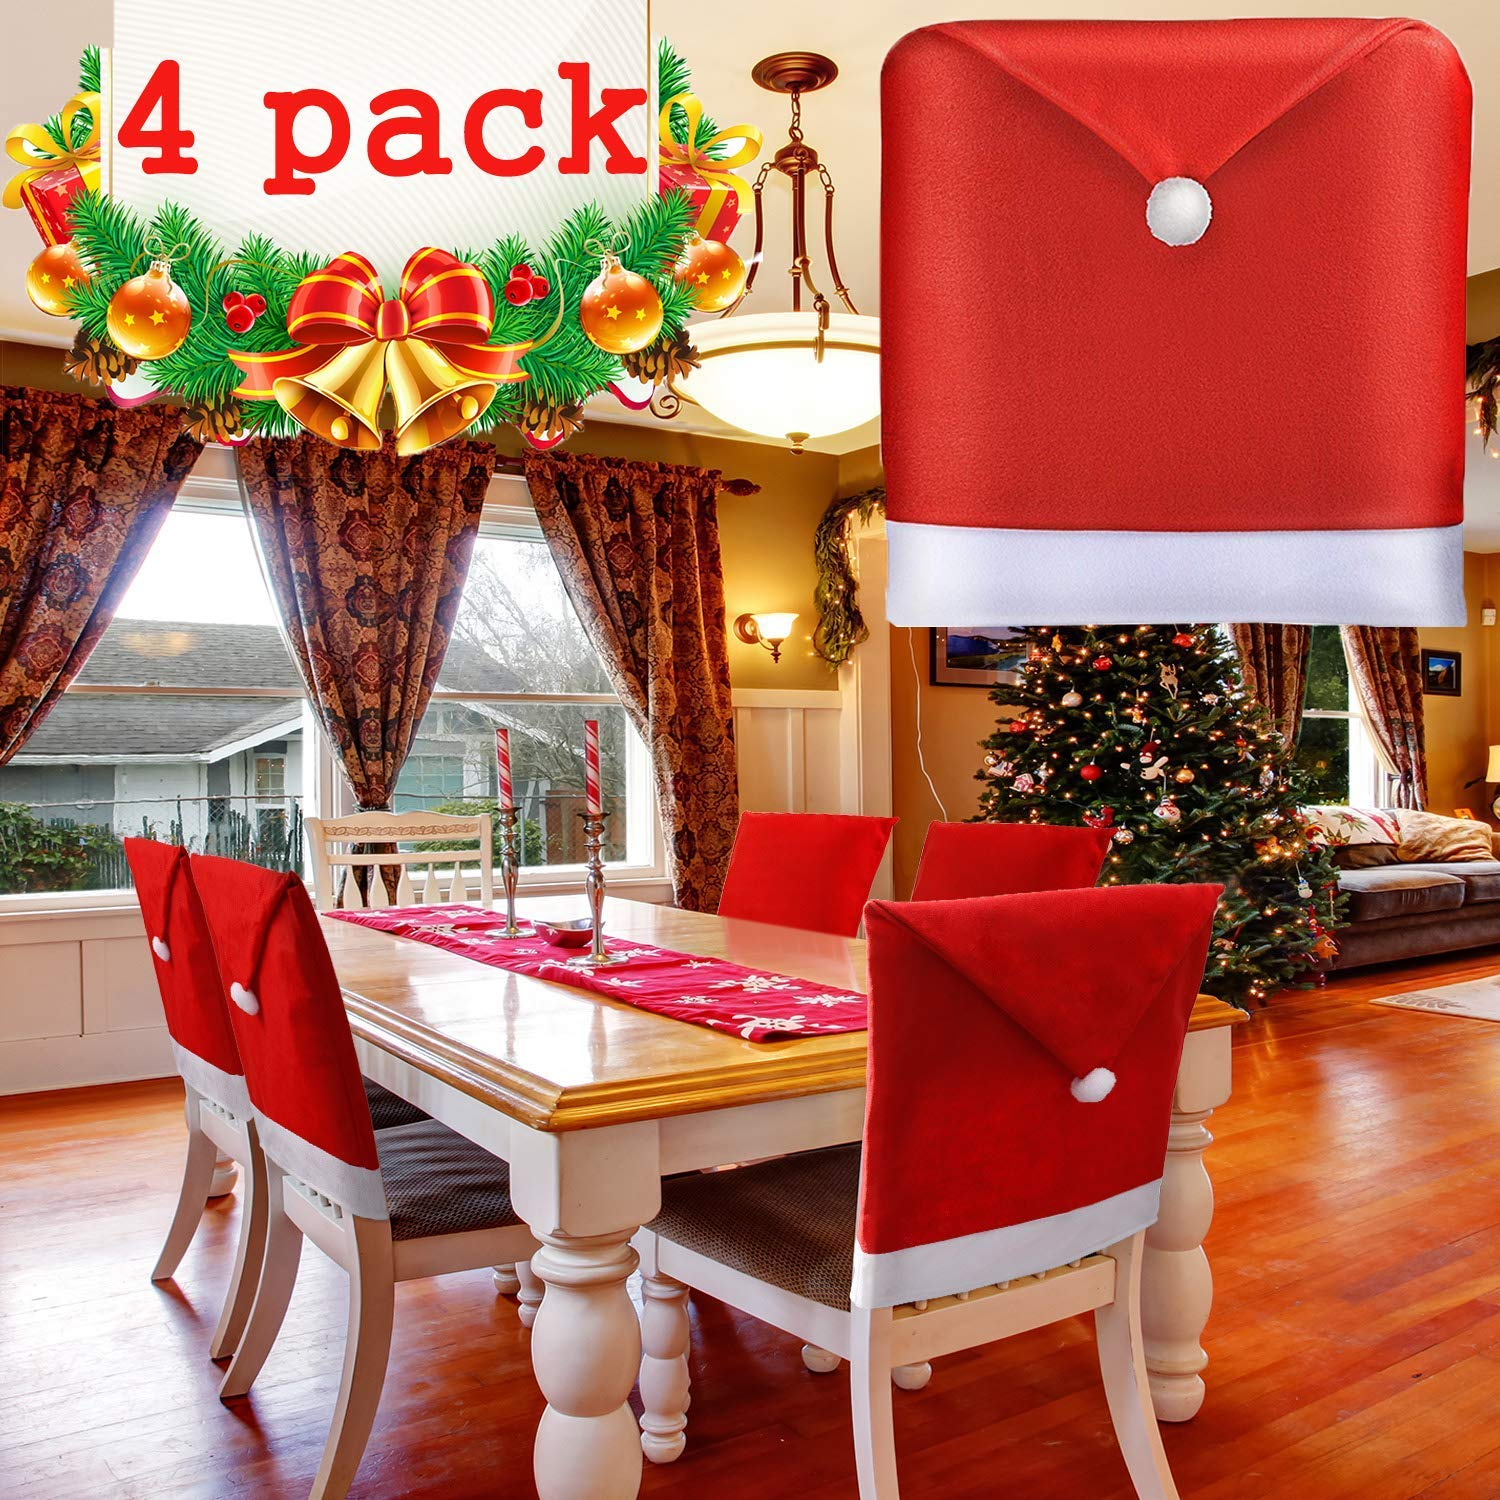 """BSWEEII Christmas Chair Back Cover Santa Claus Hat Slipcovers Decoration  7""""x 7"""" Red Hat Chair Back Covers for Dining Room Home Kitchen Chair  Covers"""